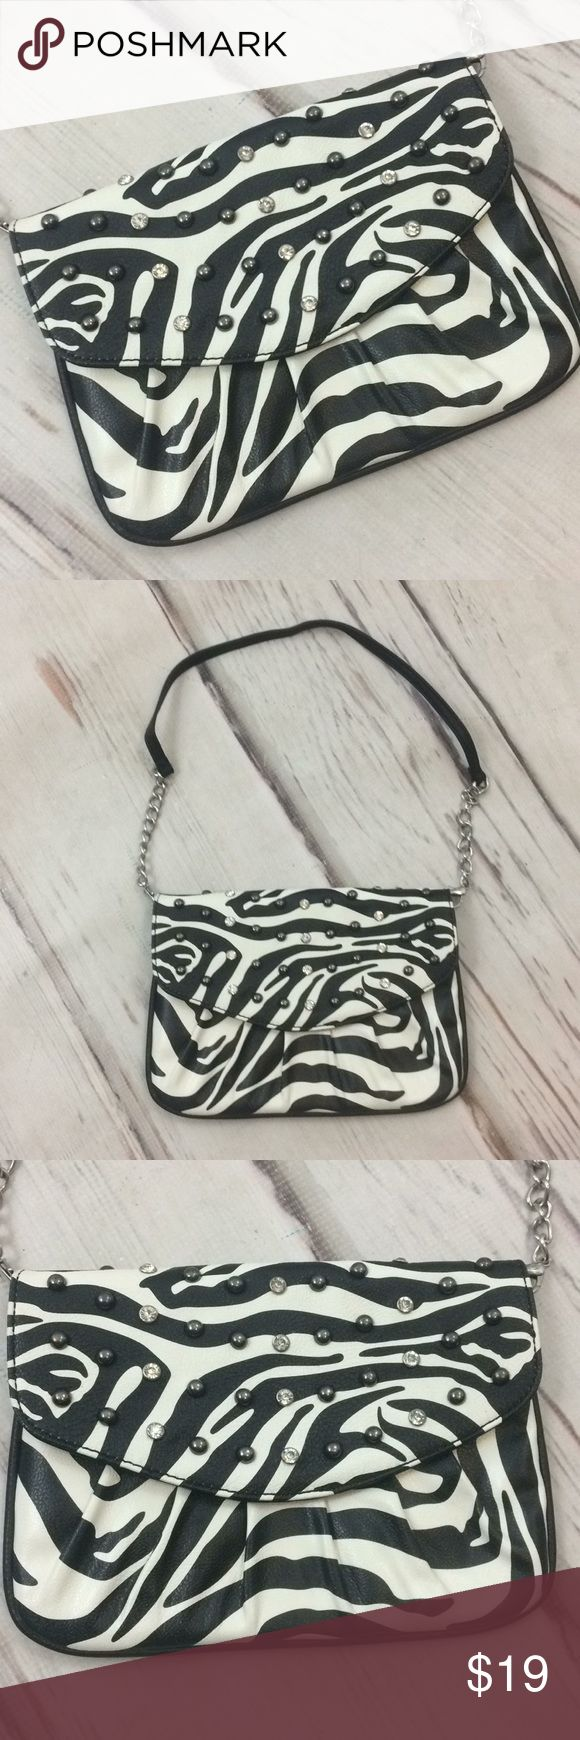 """Grace Adele zebra print rhinestone studded purse Grace Adele small purse chain strap white zebra metallic stud  Small purse with removable shoulder strap of faux leather and chain link. Snap front . Zipping pocket and three card holder slots. One cell phone pocket. Very minor signs of wear or use. Brand is Grace Adele.  9"""" wide. Height 6.75"""". .5"""" thick at bottom 1"""" at top with flap. Strap 25"""". Grace Adele Bags Shoulder Bags"""